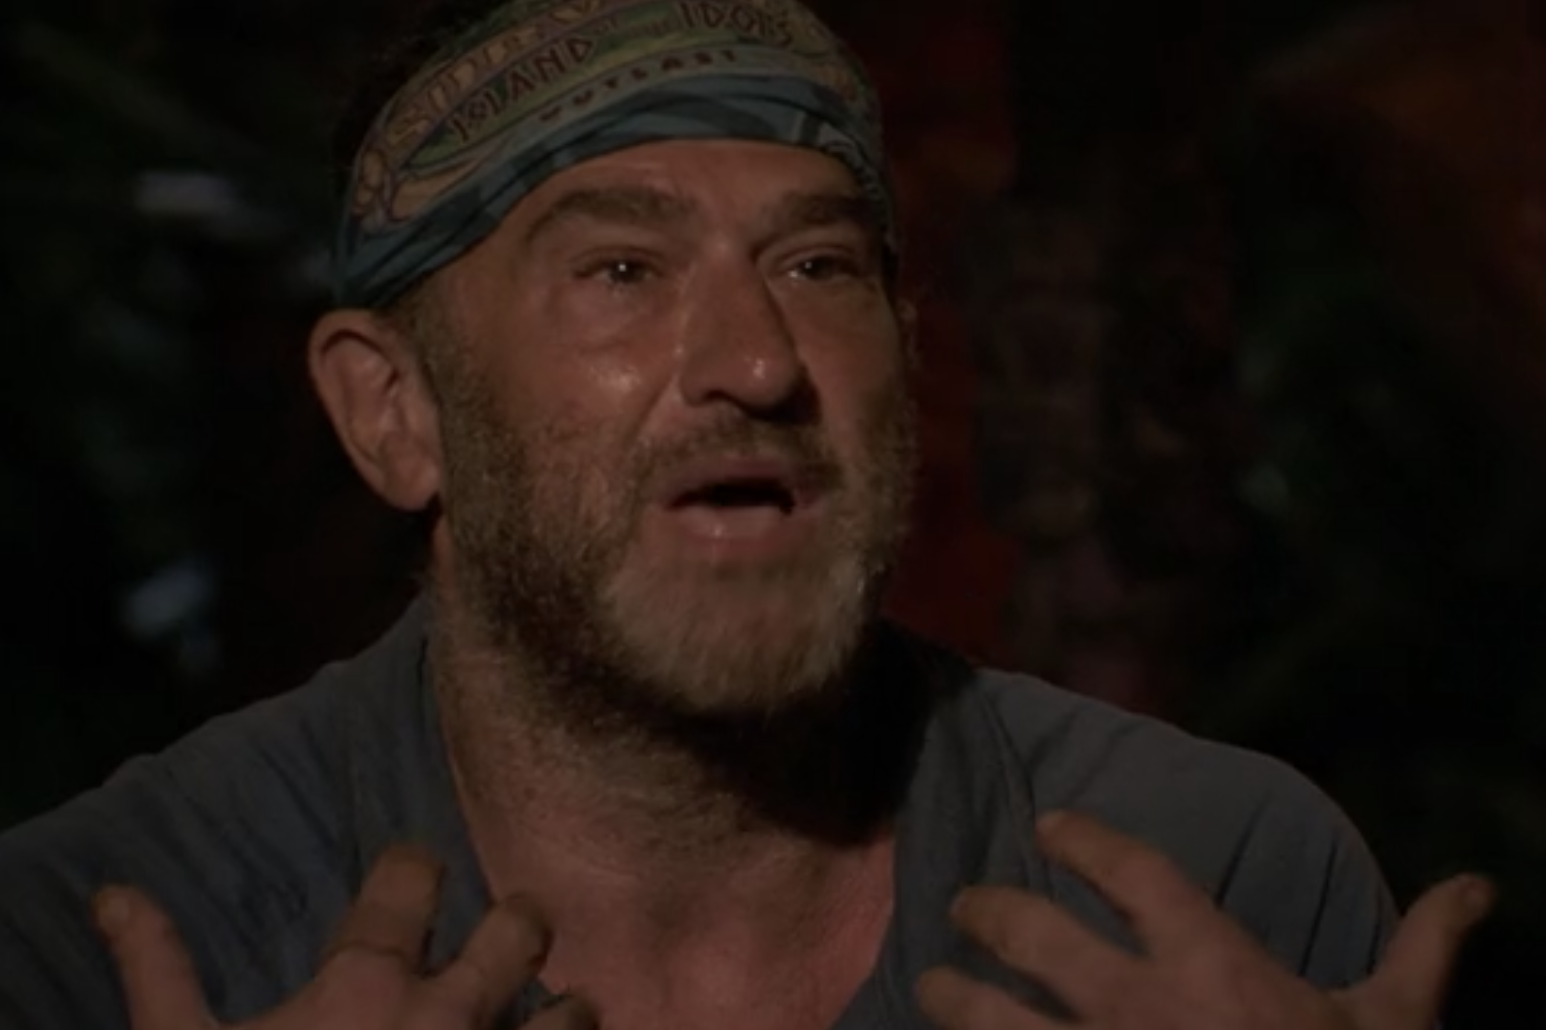 Survivor participant Dan Spilo removed after 'another incident' after being accused of inappropriate touching